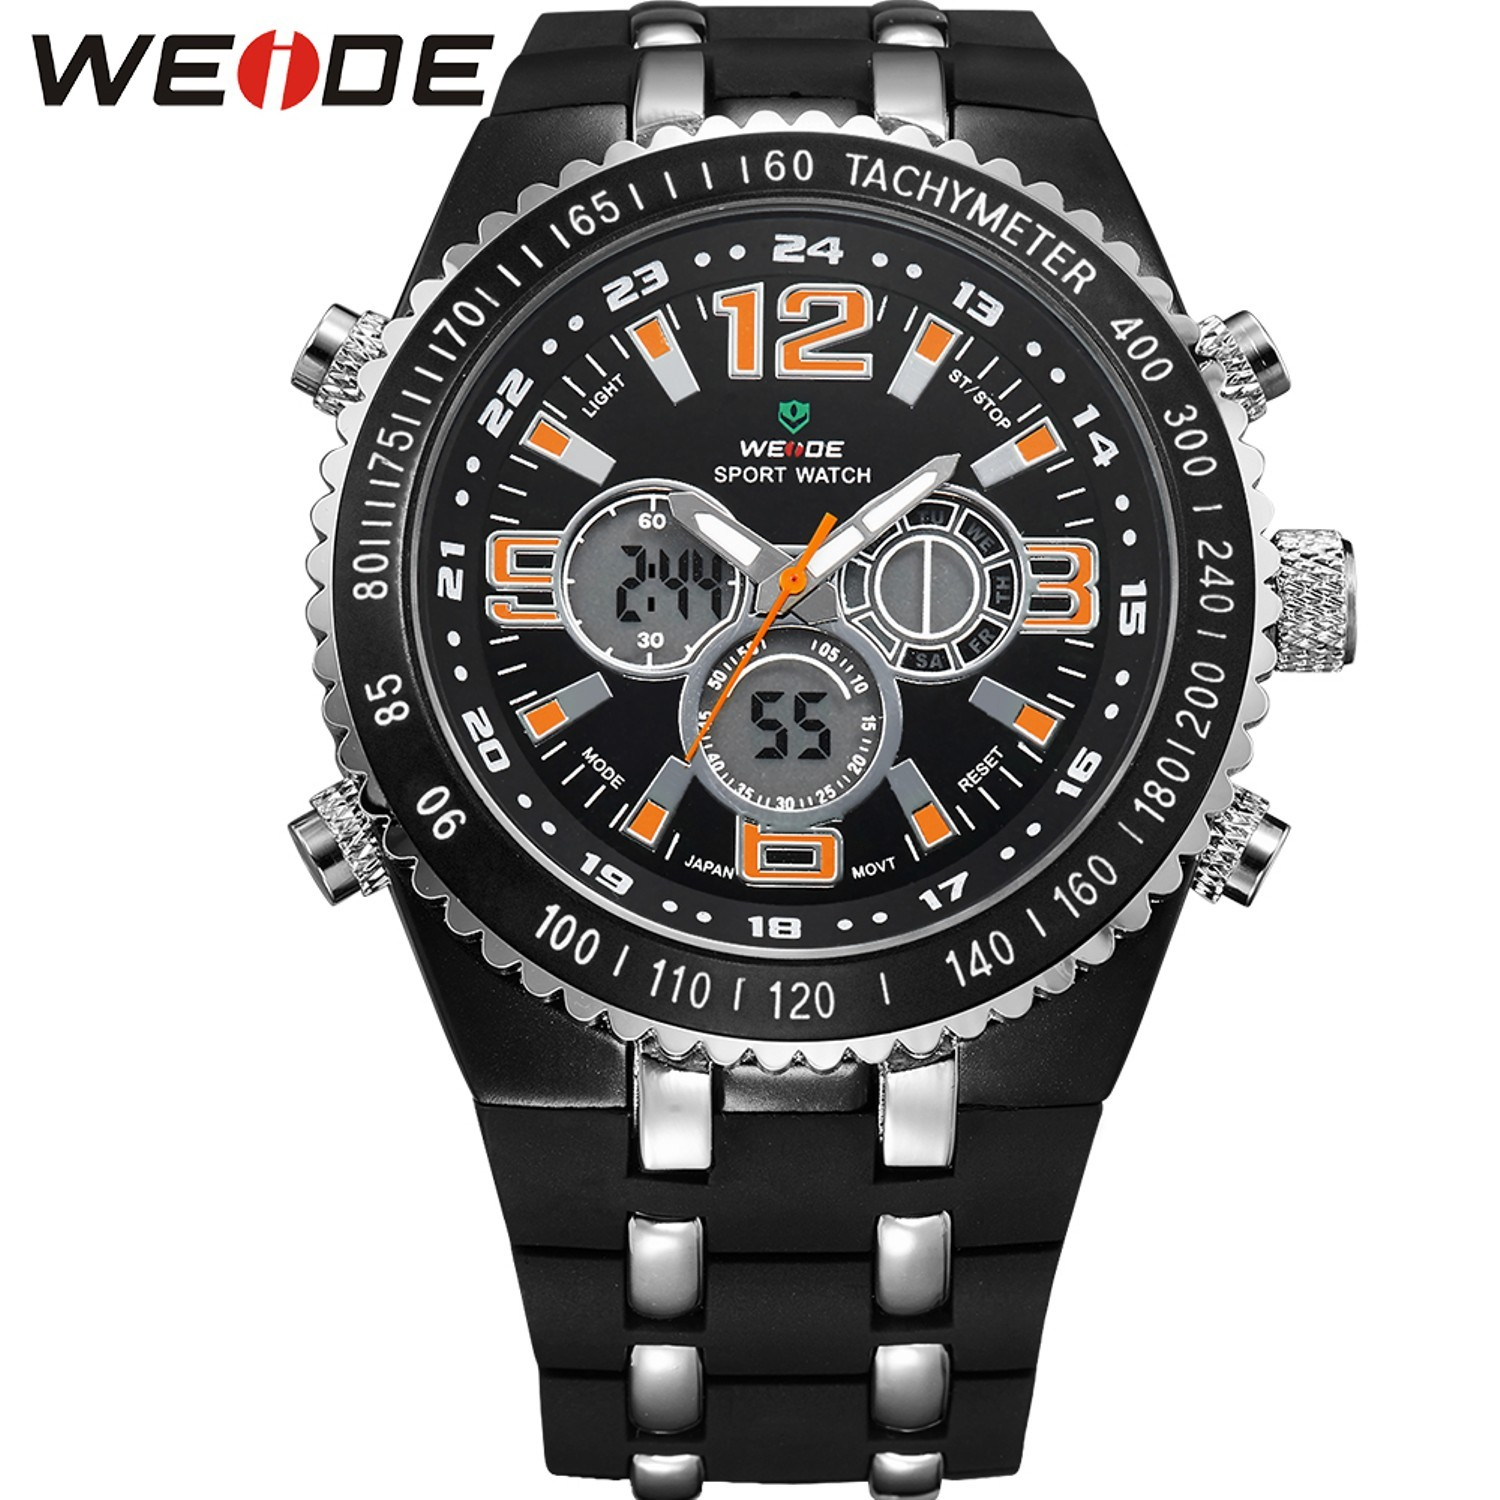 WEIDE-Sports-Big-Dial-Watches-For-Men-Waterproof-Military-Quartz-Analog-Digital-Dual-Time-Display-Luxury_1500x1500_STRETCH_439.jpg